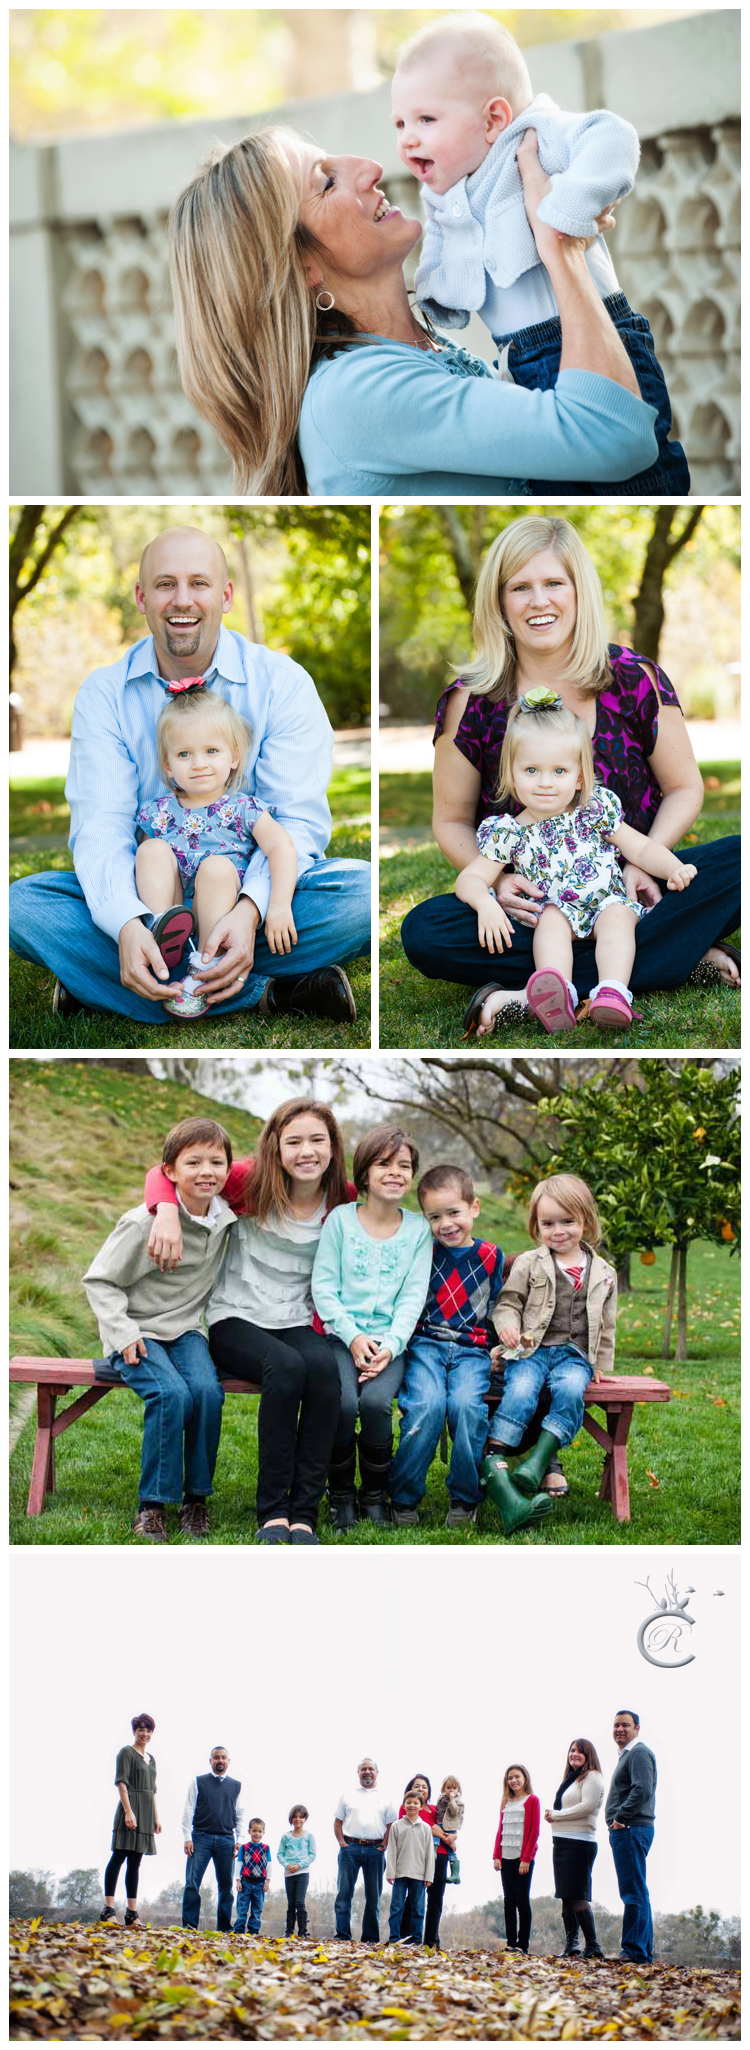 Outdoors family portraits | Carrie Richards Photography